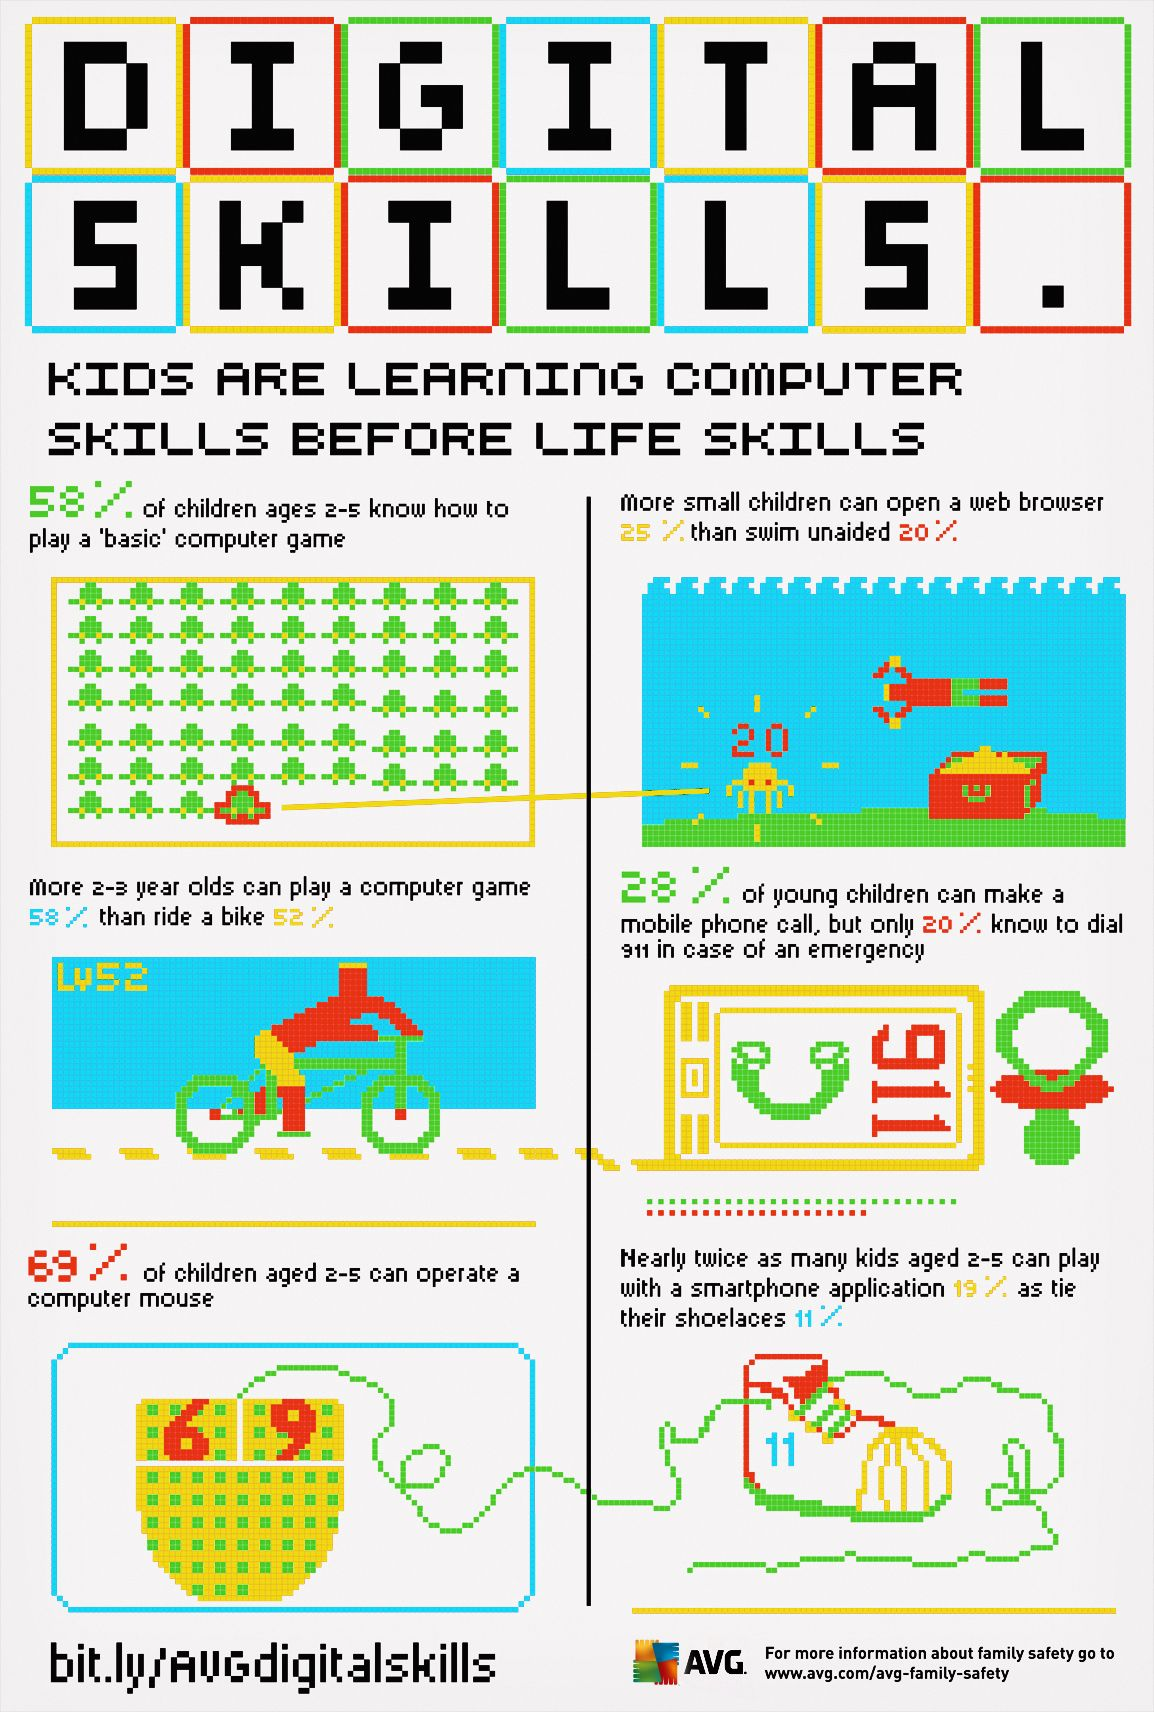 Worksheet Statistics For Kids 17 best images about children technology on pinterest texting childhood education and technology